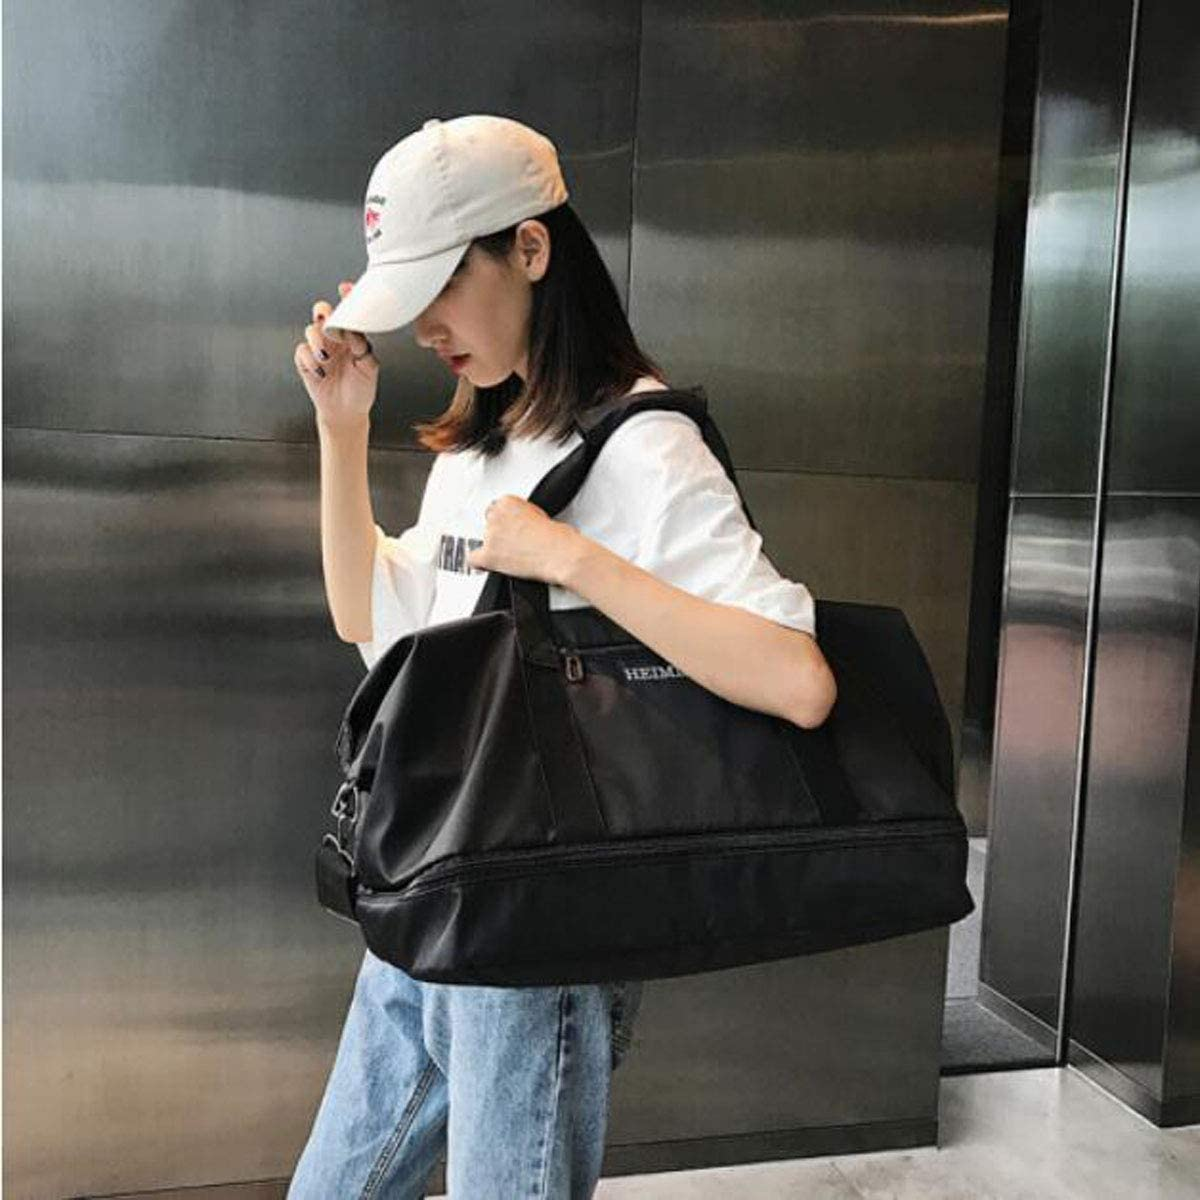 2018 Practical Travel Bag Kaiyitong Fitness Bag Business Fashion Casual Fashion Bag Black Size: 452428cm Color : Pink